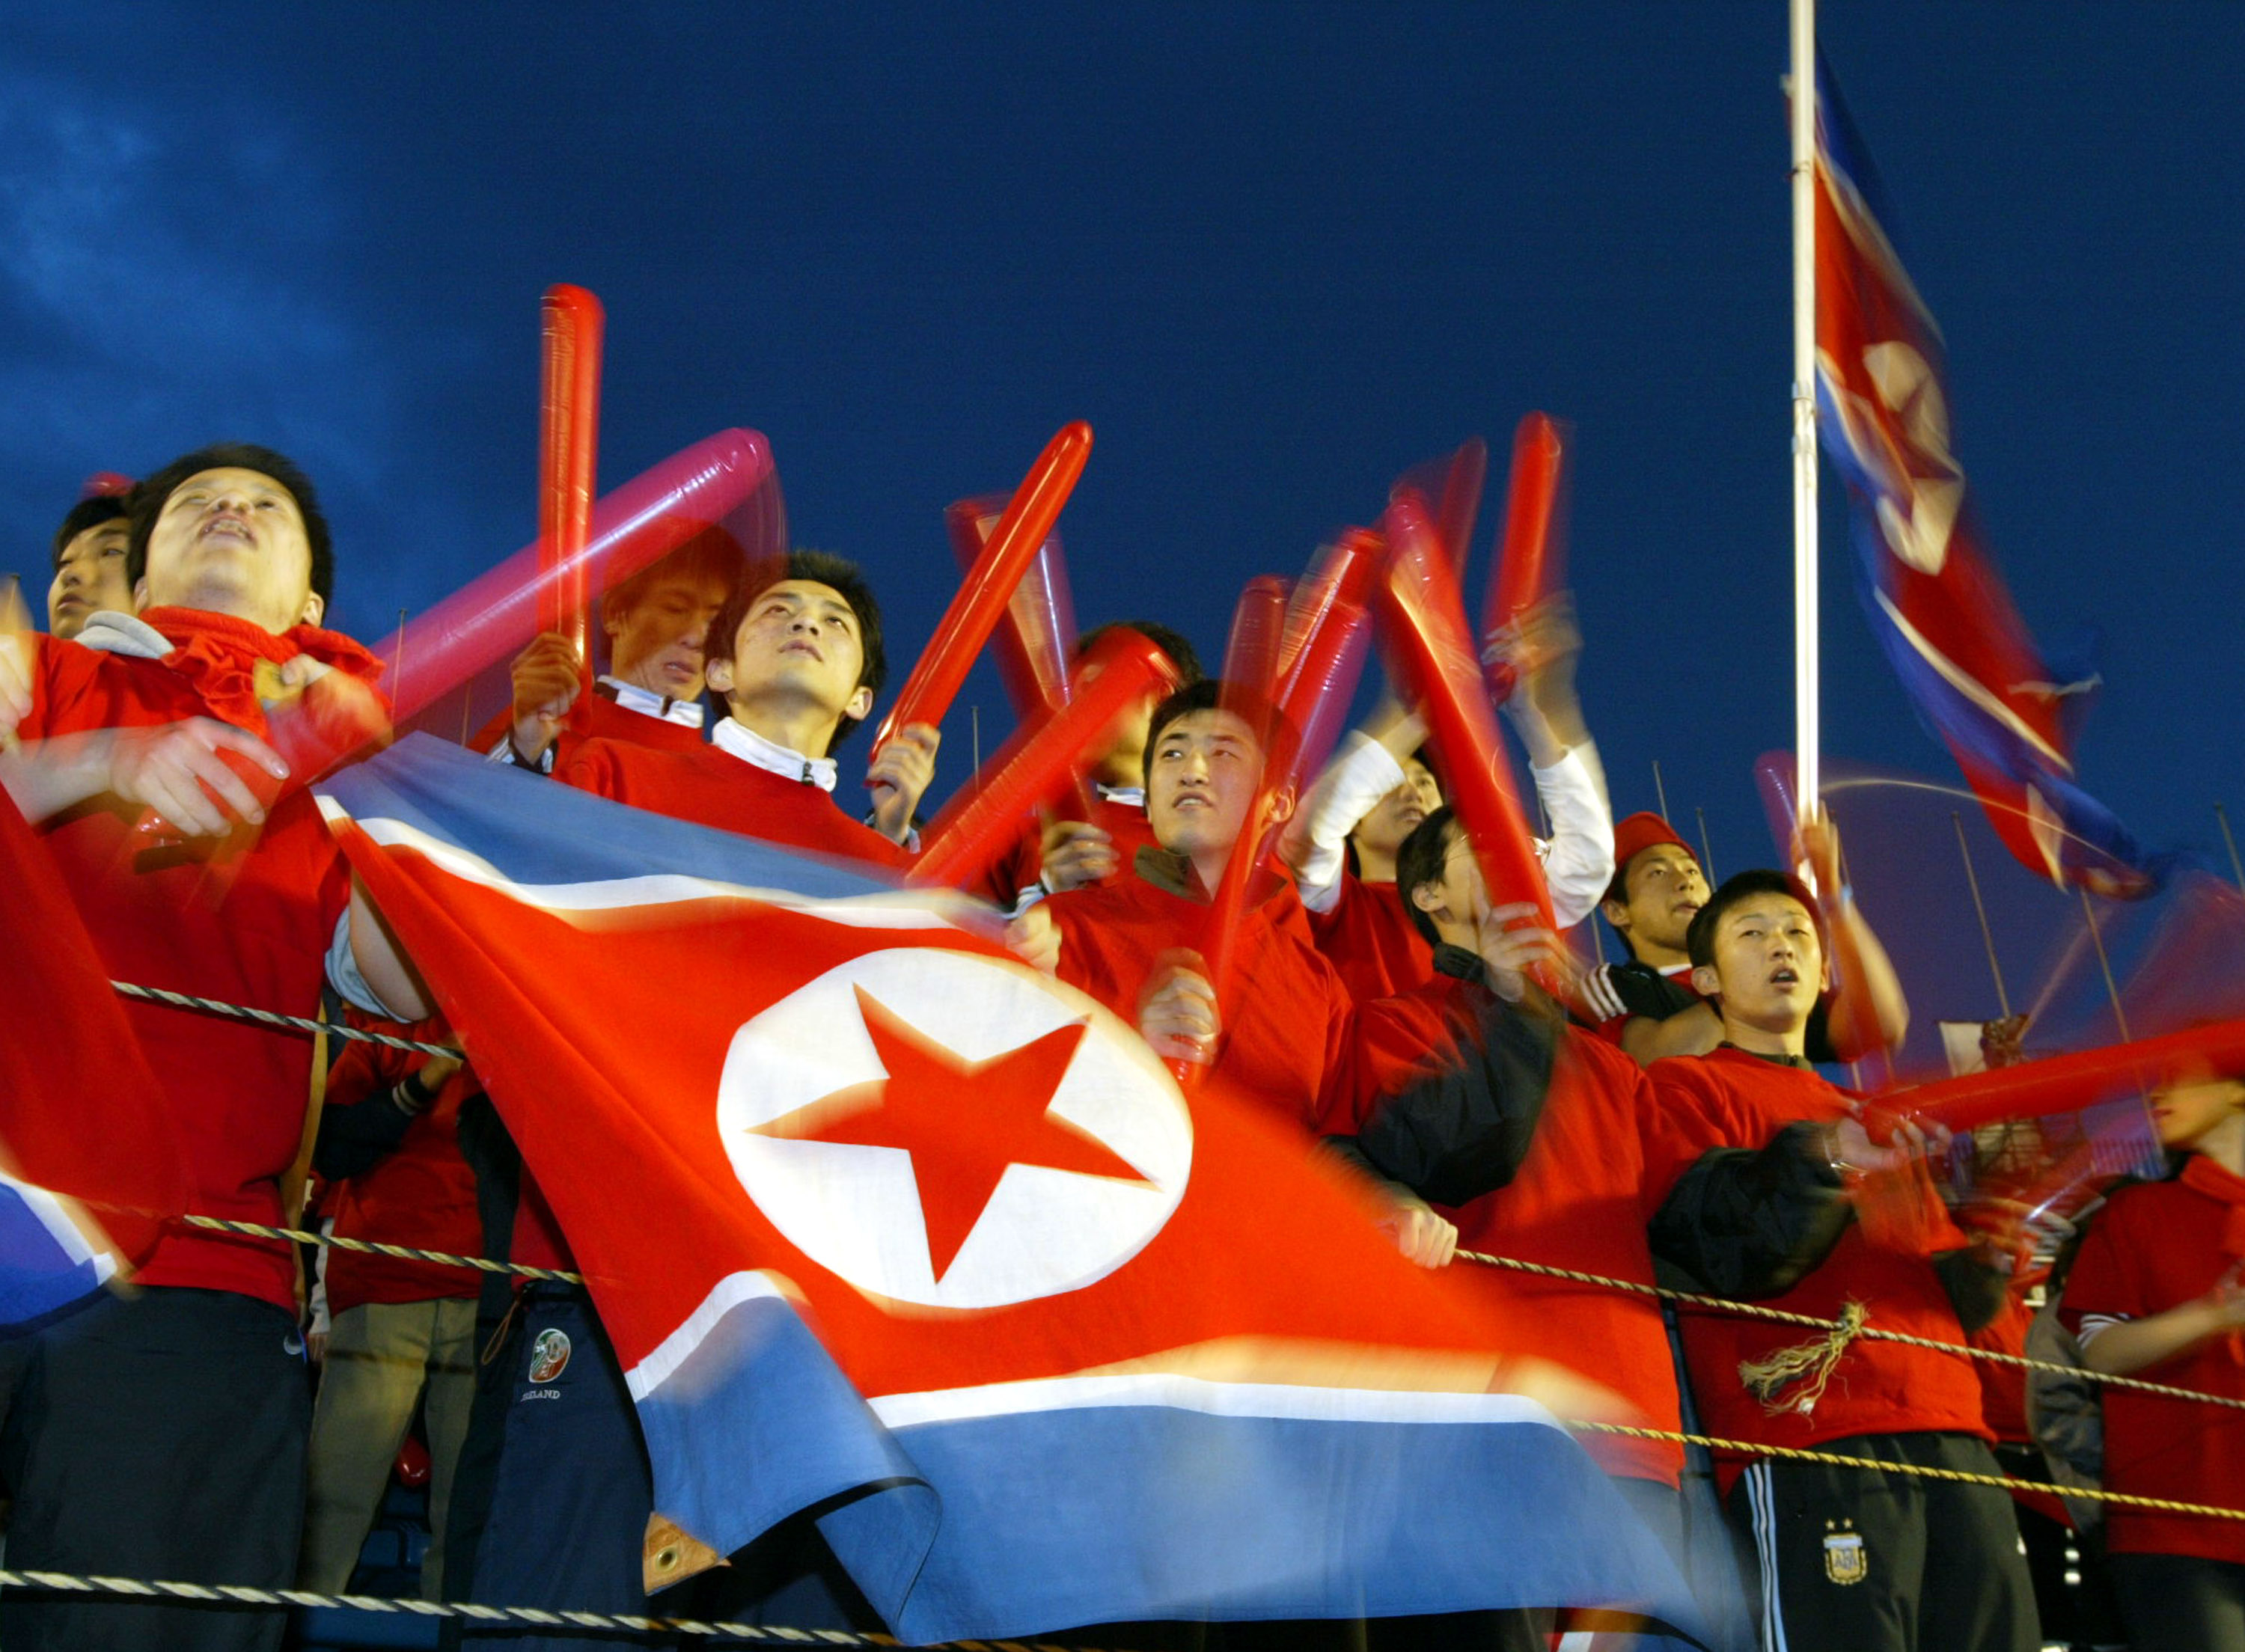 Fans of the North Korean national women's soccer team, cheer at the AFC Olympics qualifying tournament semi-final game against Japan at the National Stadium April 24, 2004 in Tokyo, Japan.